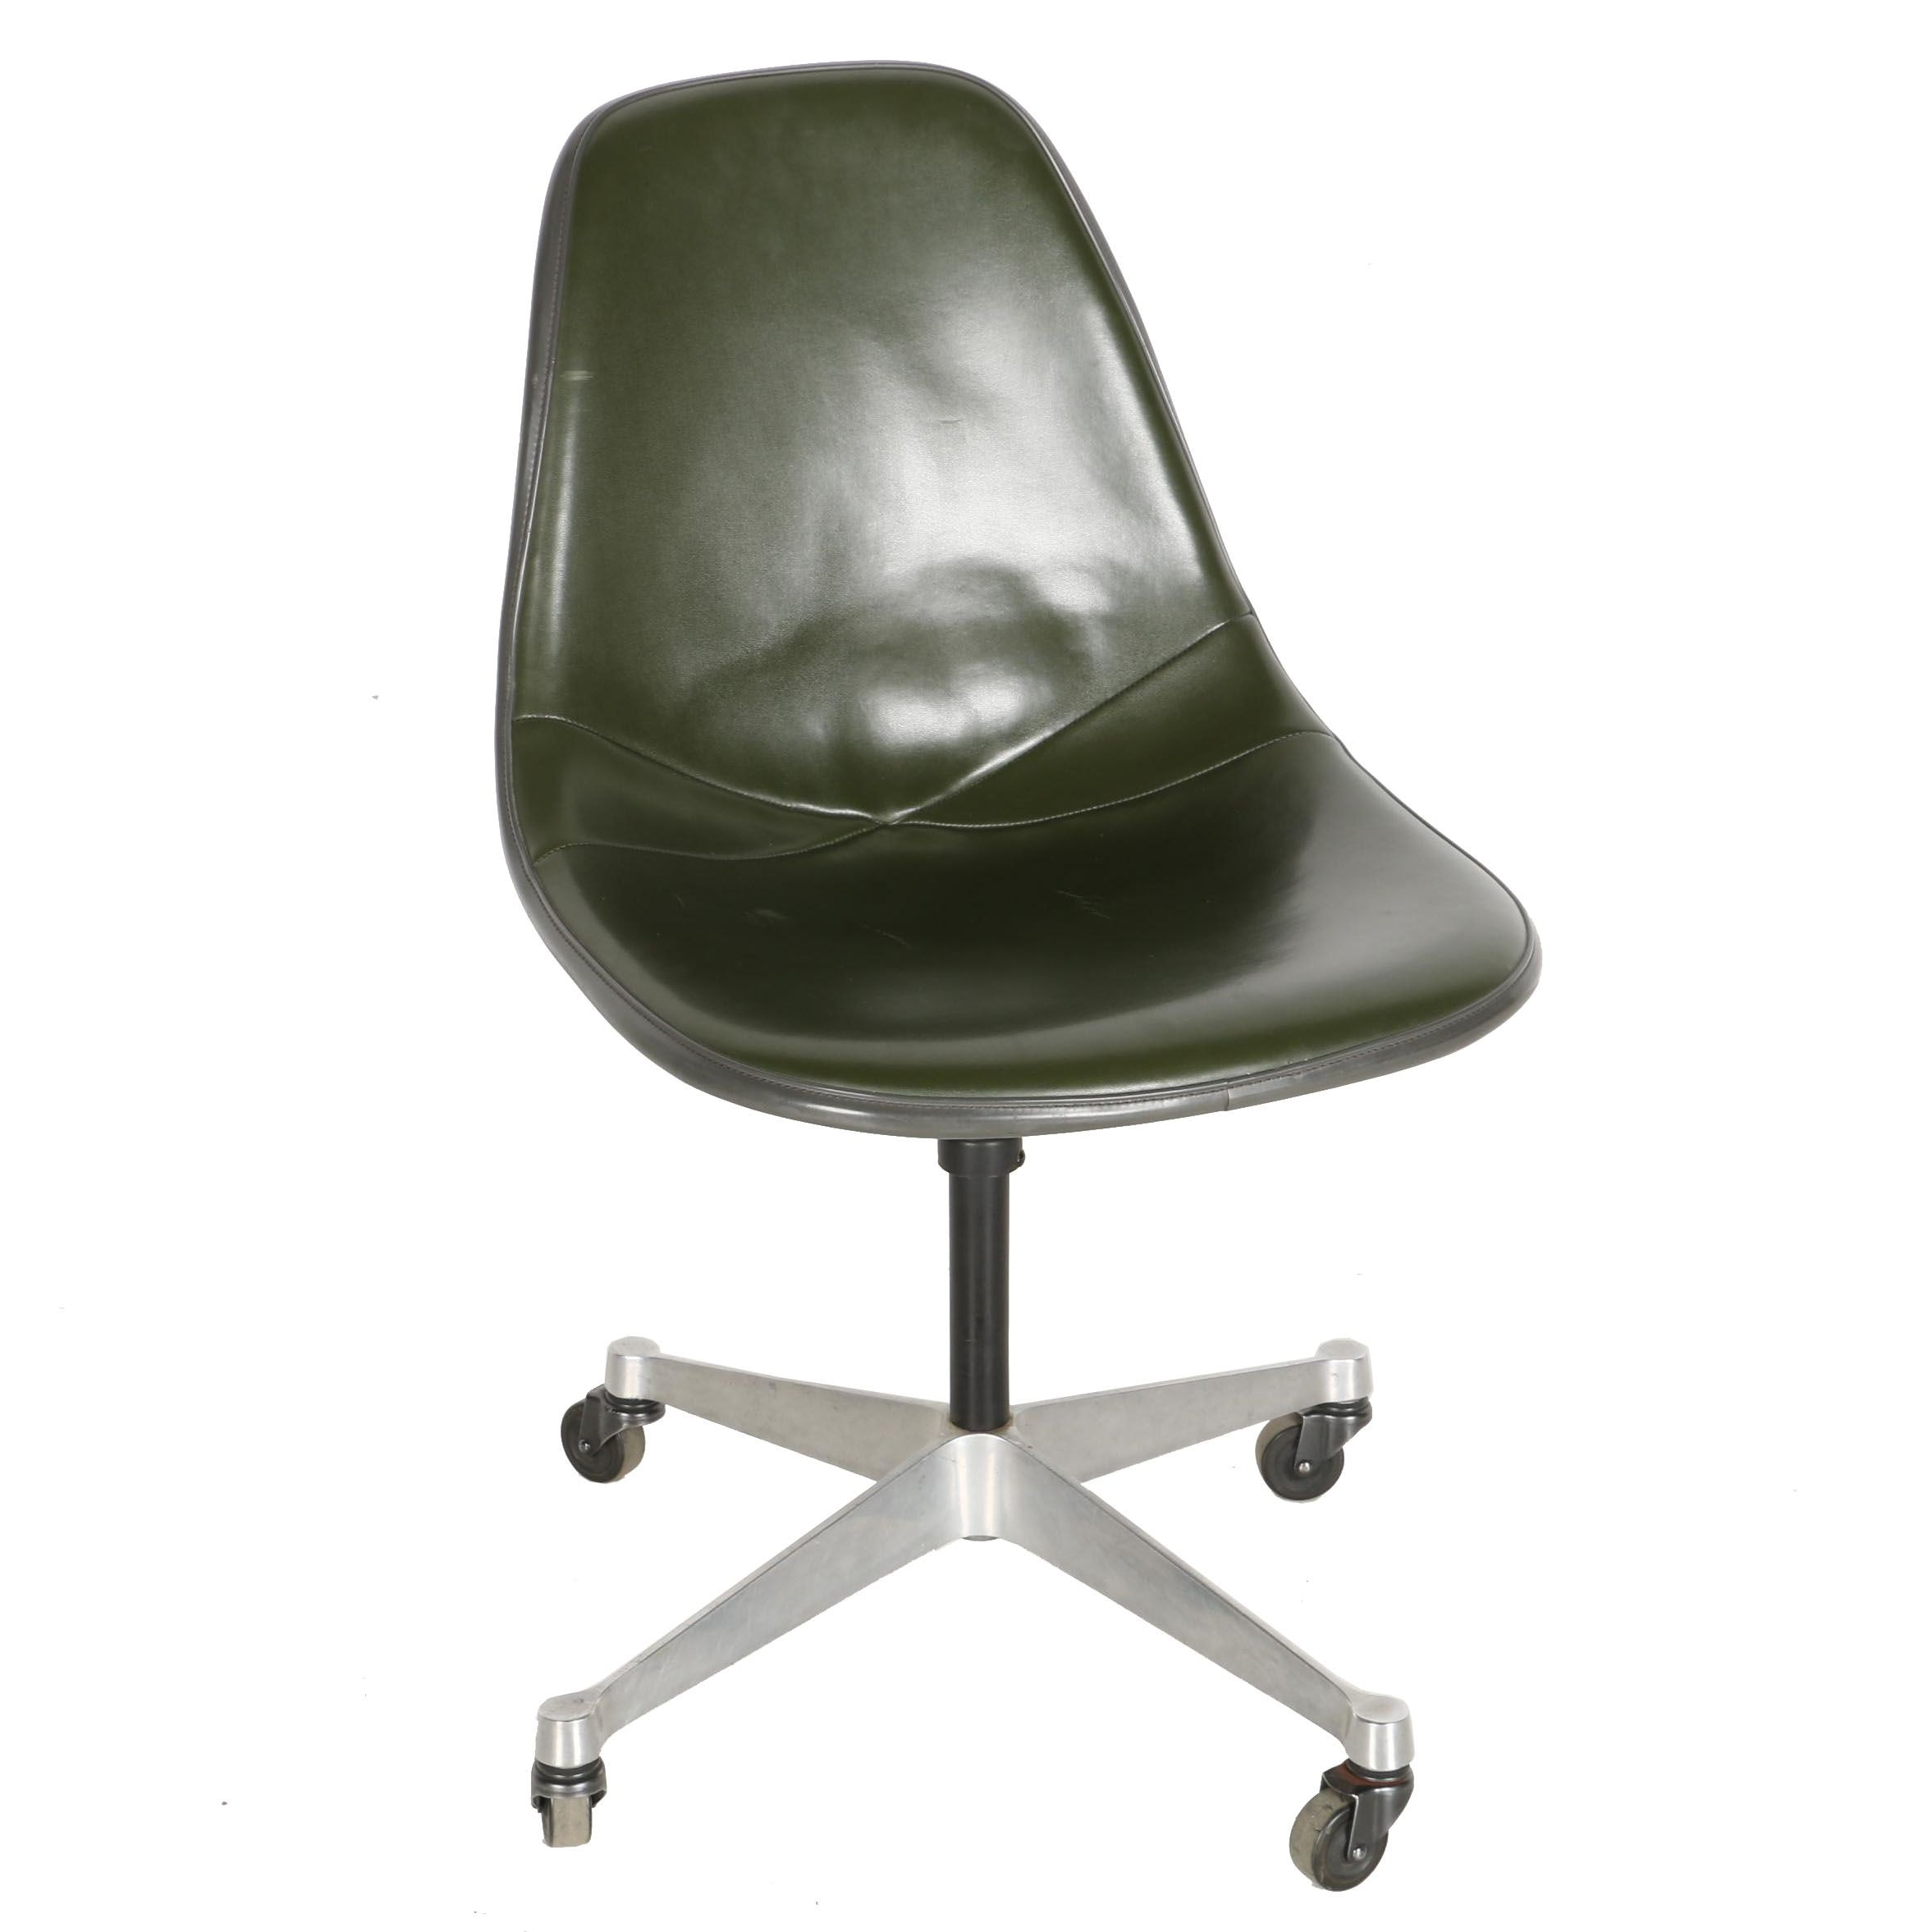 """Mid Century Modern """"1705"""" Swivel Chair by Eames for Herman Miller"""